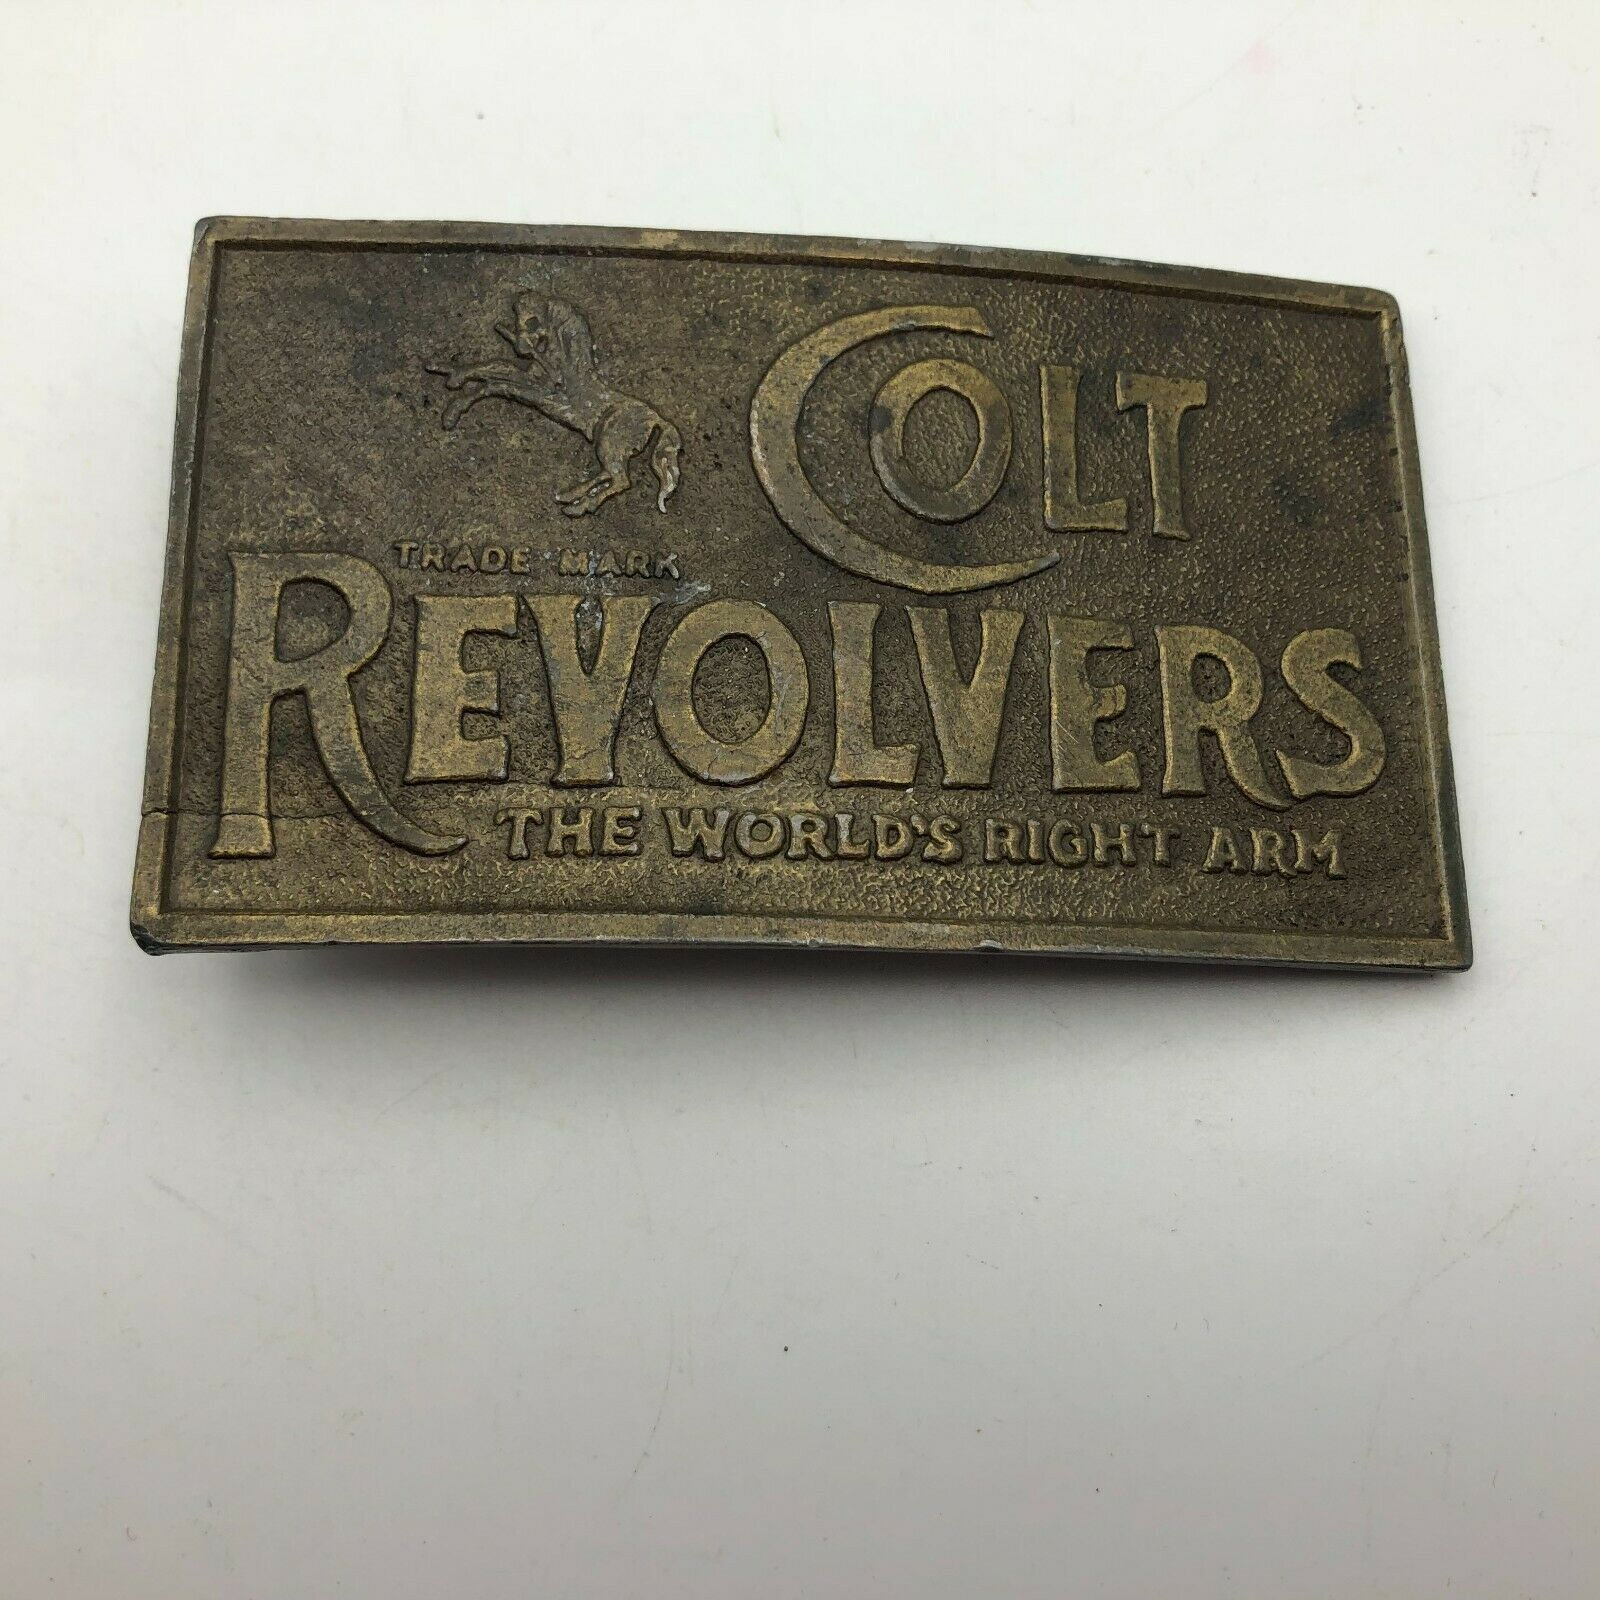 Vtg Colt Revolvers Worlds Right Arm Belt Buckle Firearms Advertising Lewis XY3